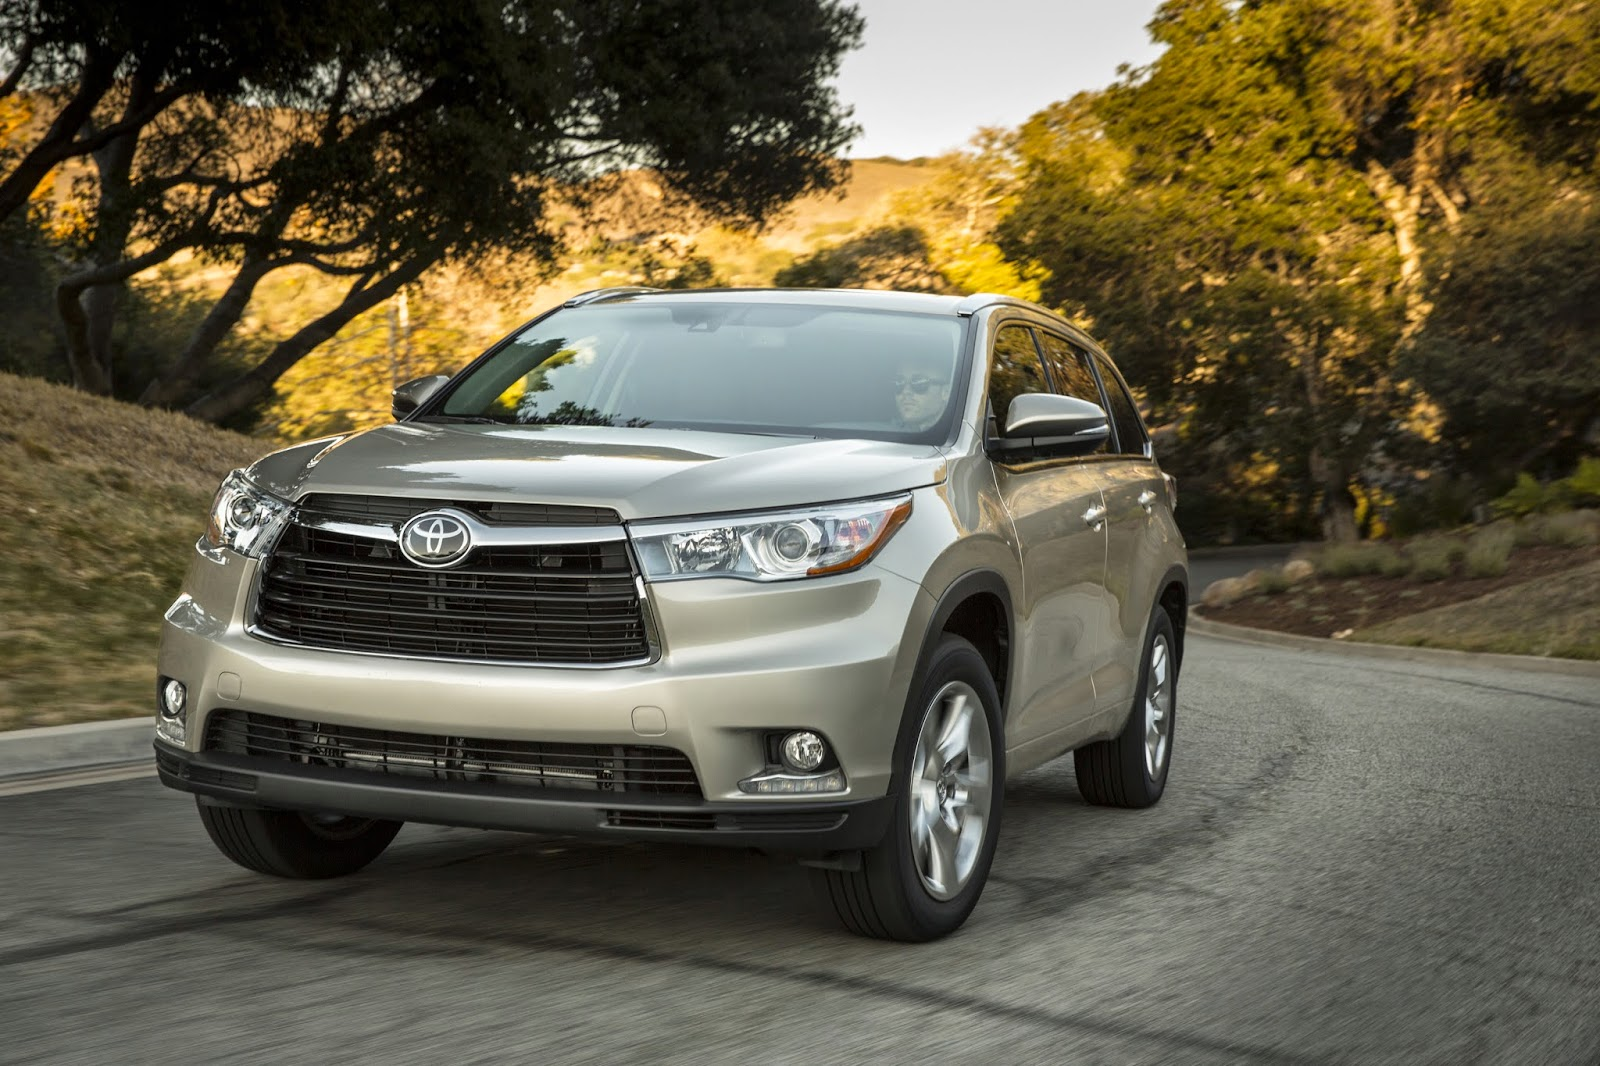 Front 3/4 view of 2014 Toyota Highlander Hybrid